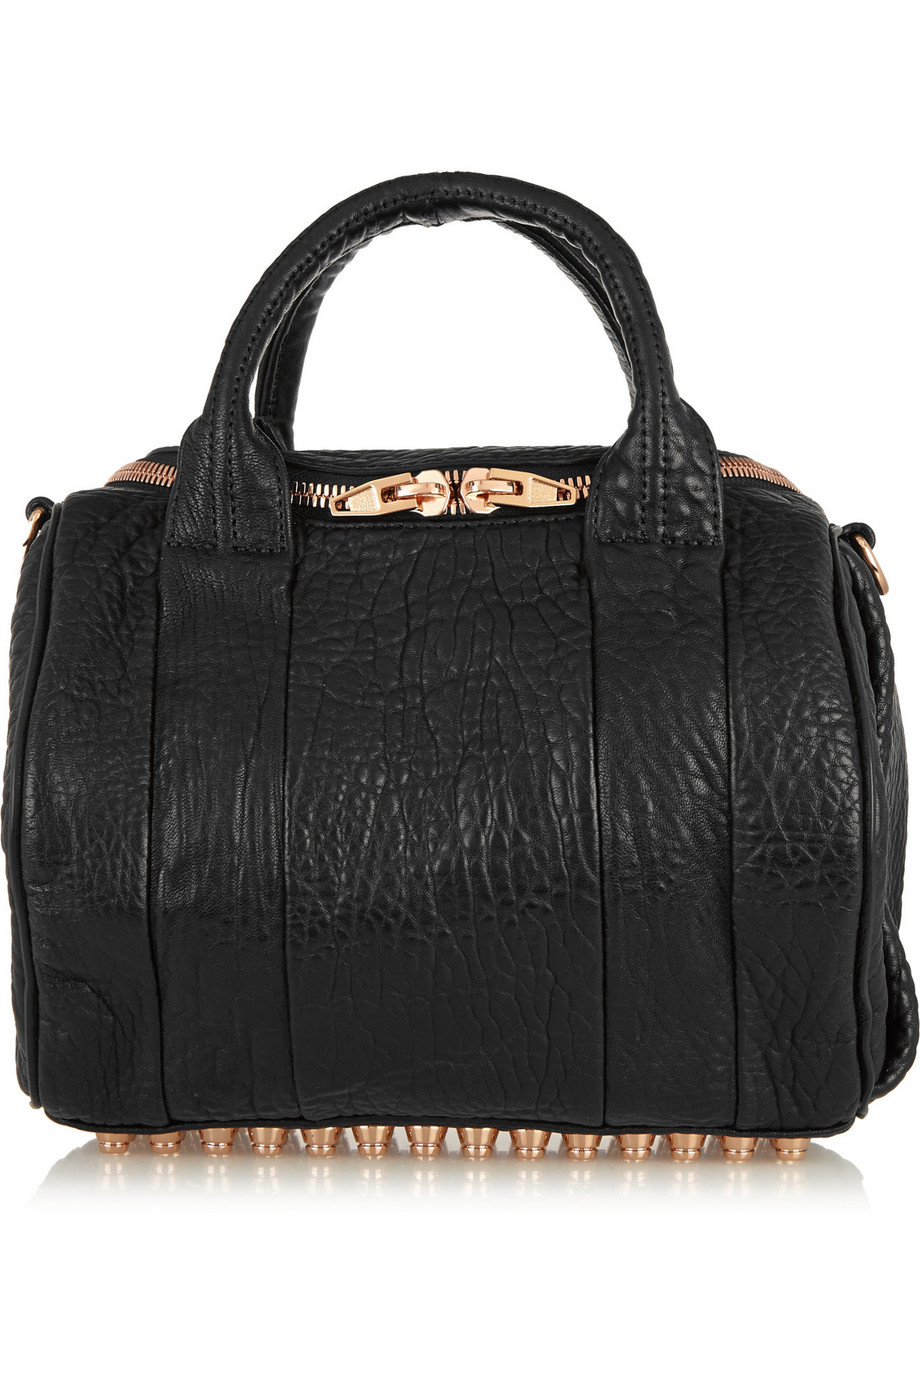 Alexander Wang Rockie Textured-Leather Tote, Black, Women's, Size: One Size